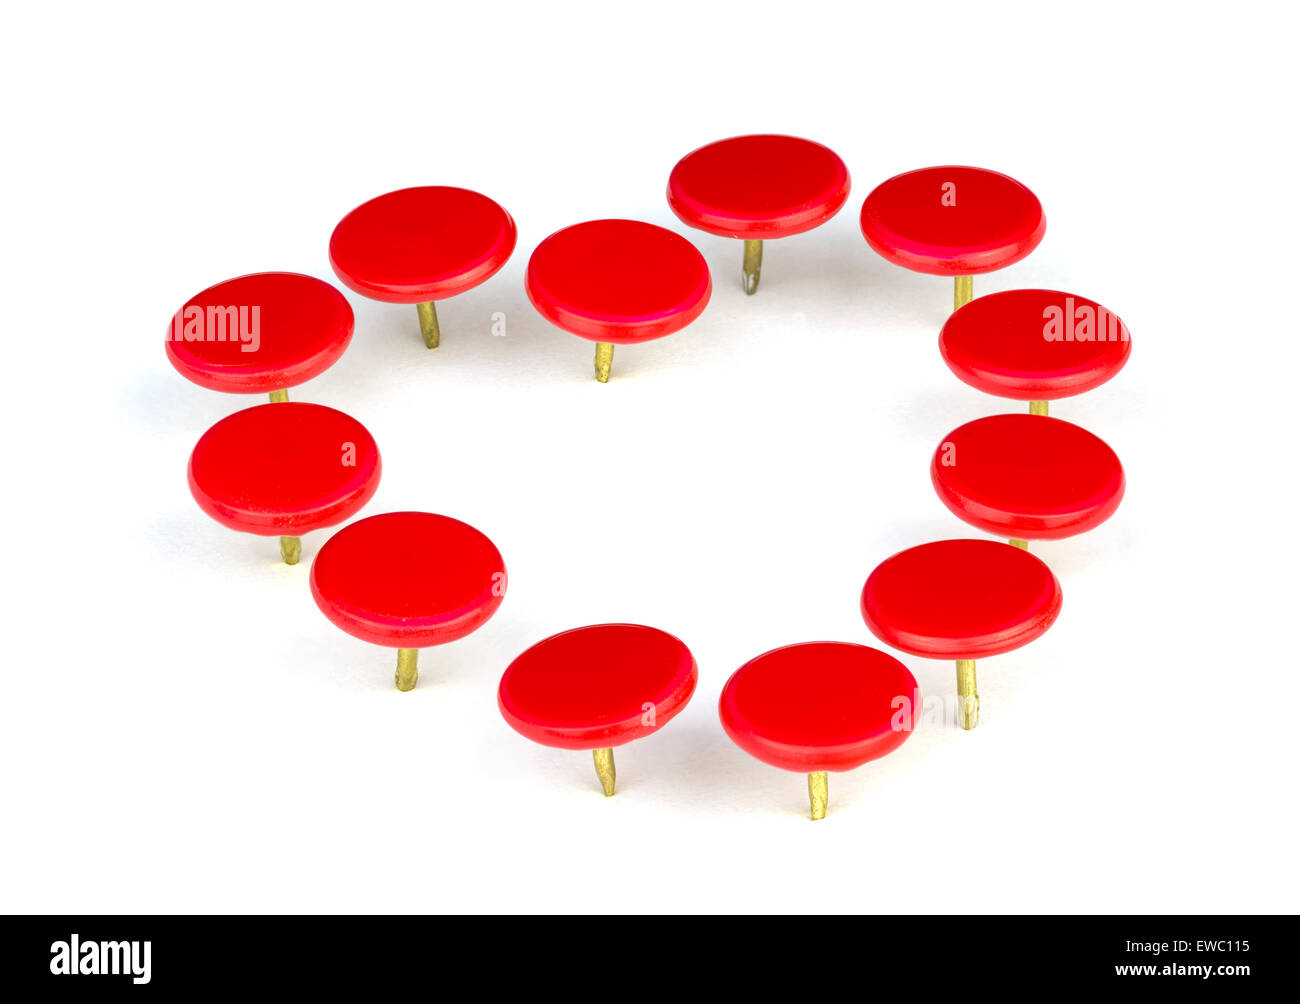 Love concept. Red drawing pins (thumbtacks) in the shape of a heart, on a white background. - Stock Image